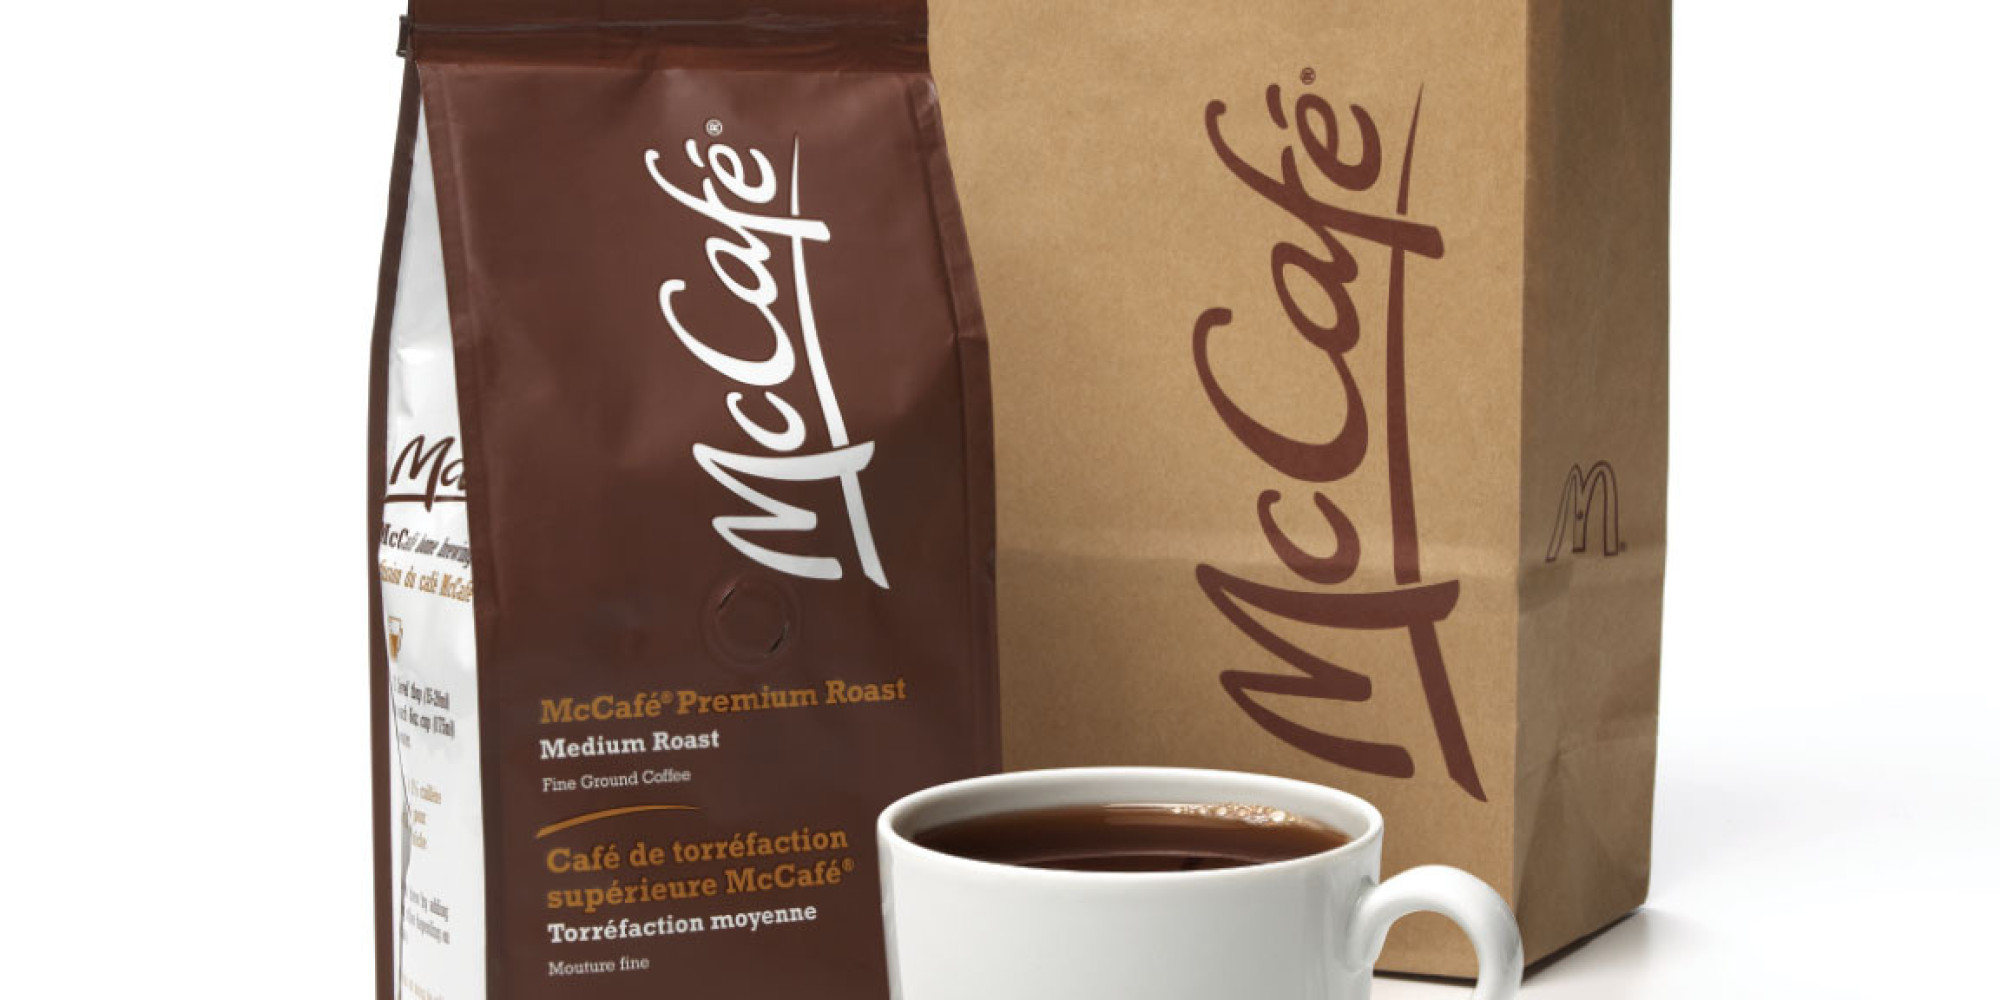 Photo: McDonald's McCafé packaged coffee to be sold in retail in the U.S. starting 2015